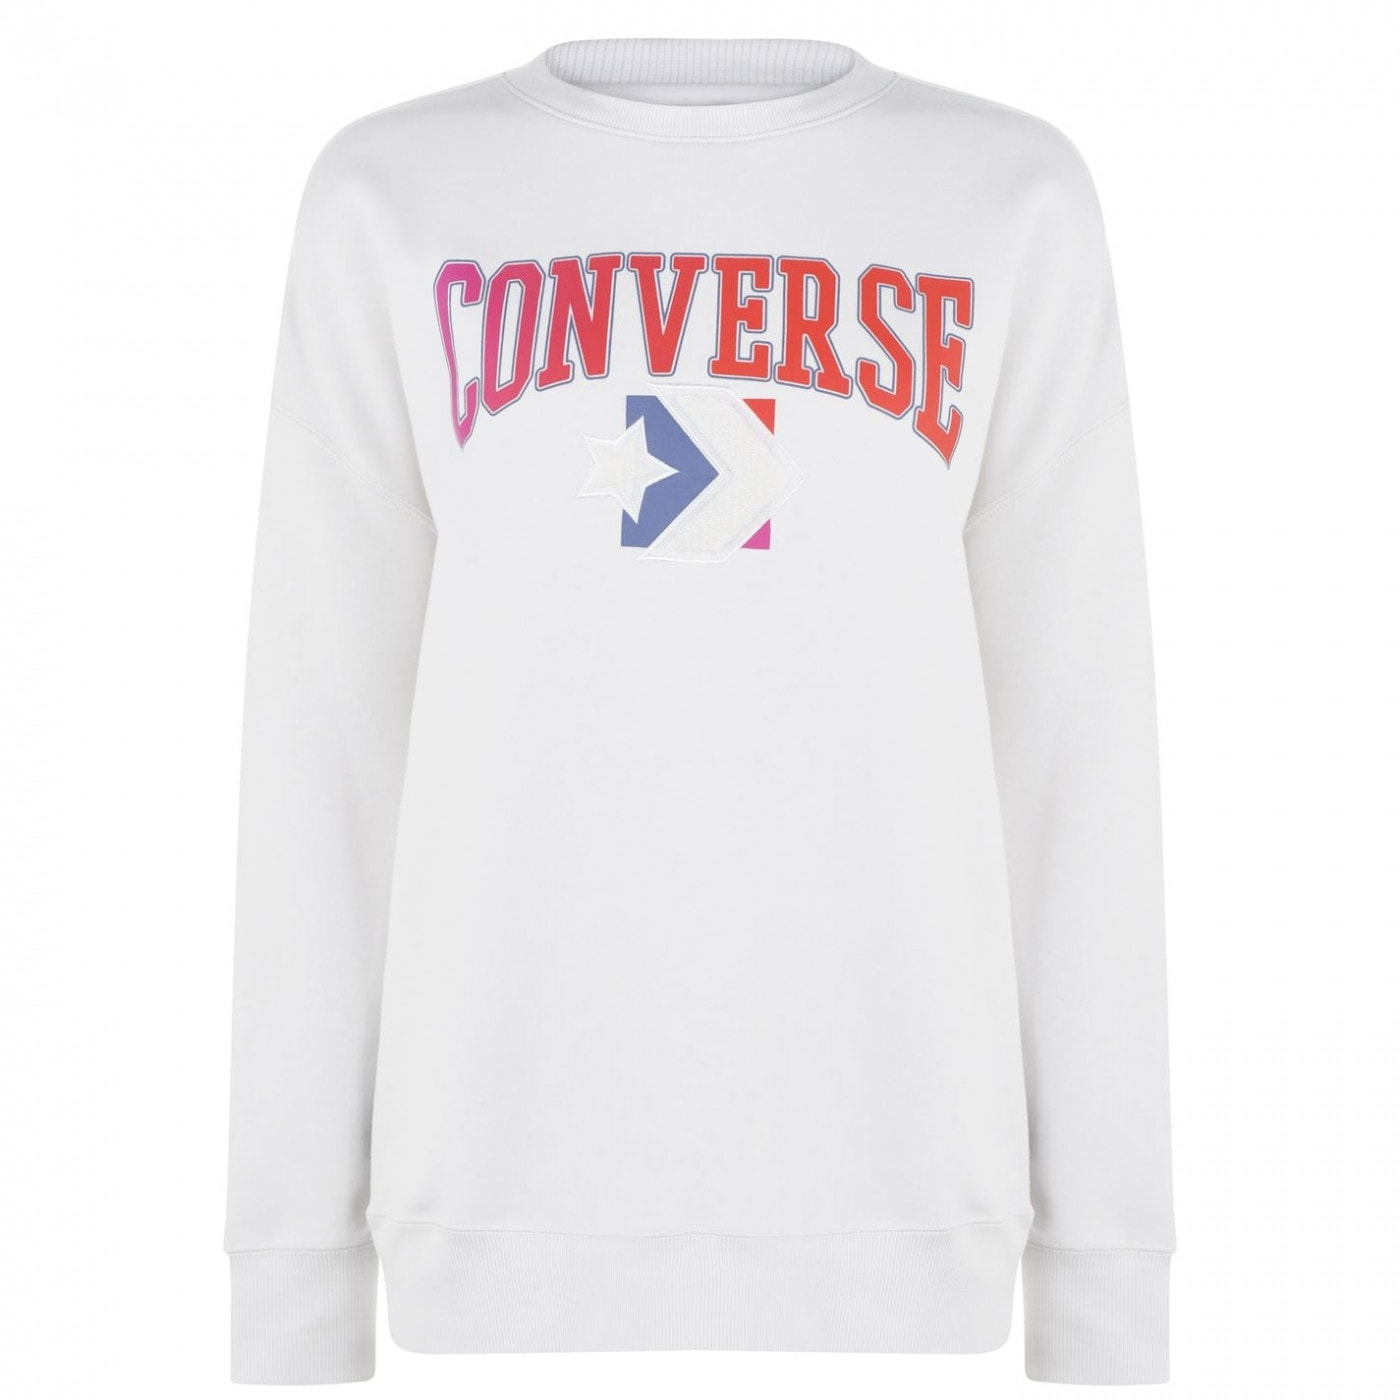 Converse Lifestyle Warmth Pack Crew Sweatshirt